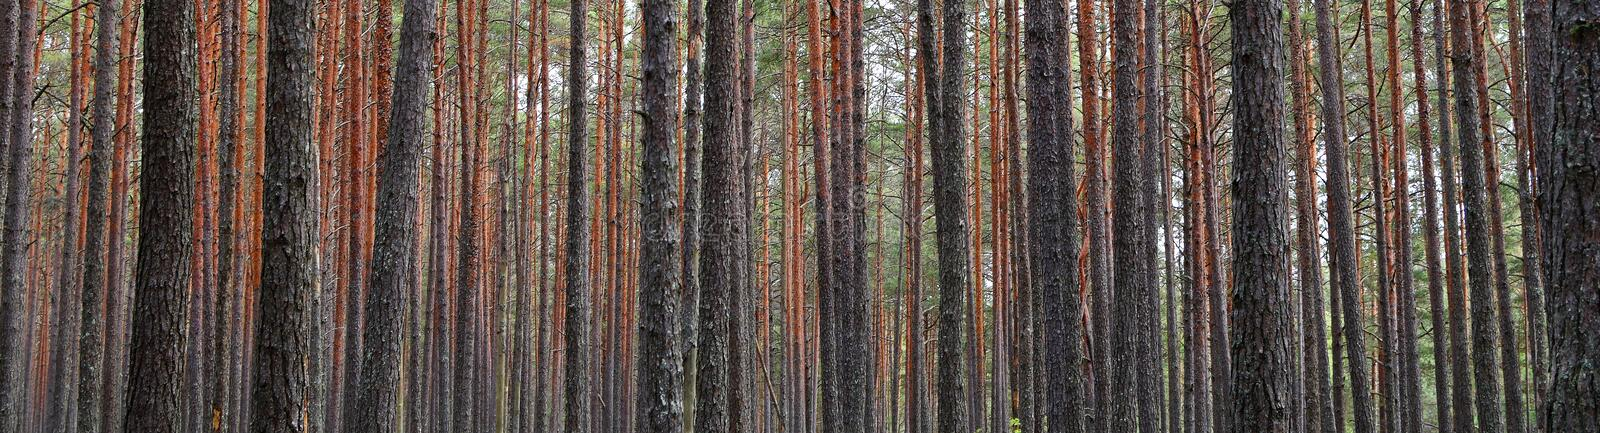 Pine forest tree trunks royalty free stock photos